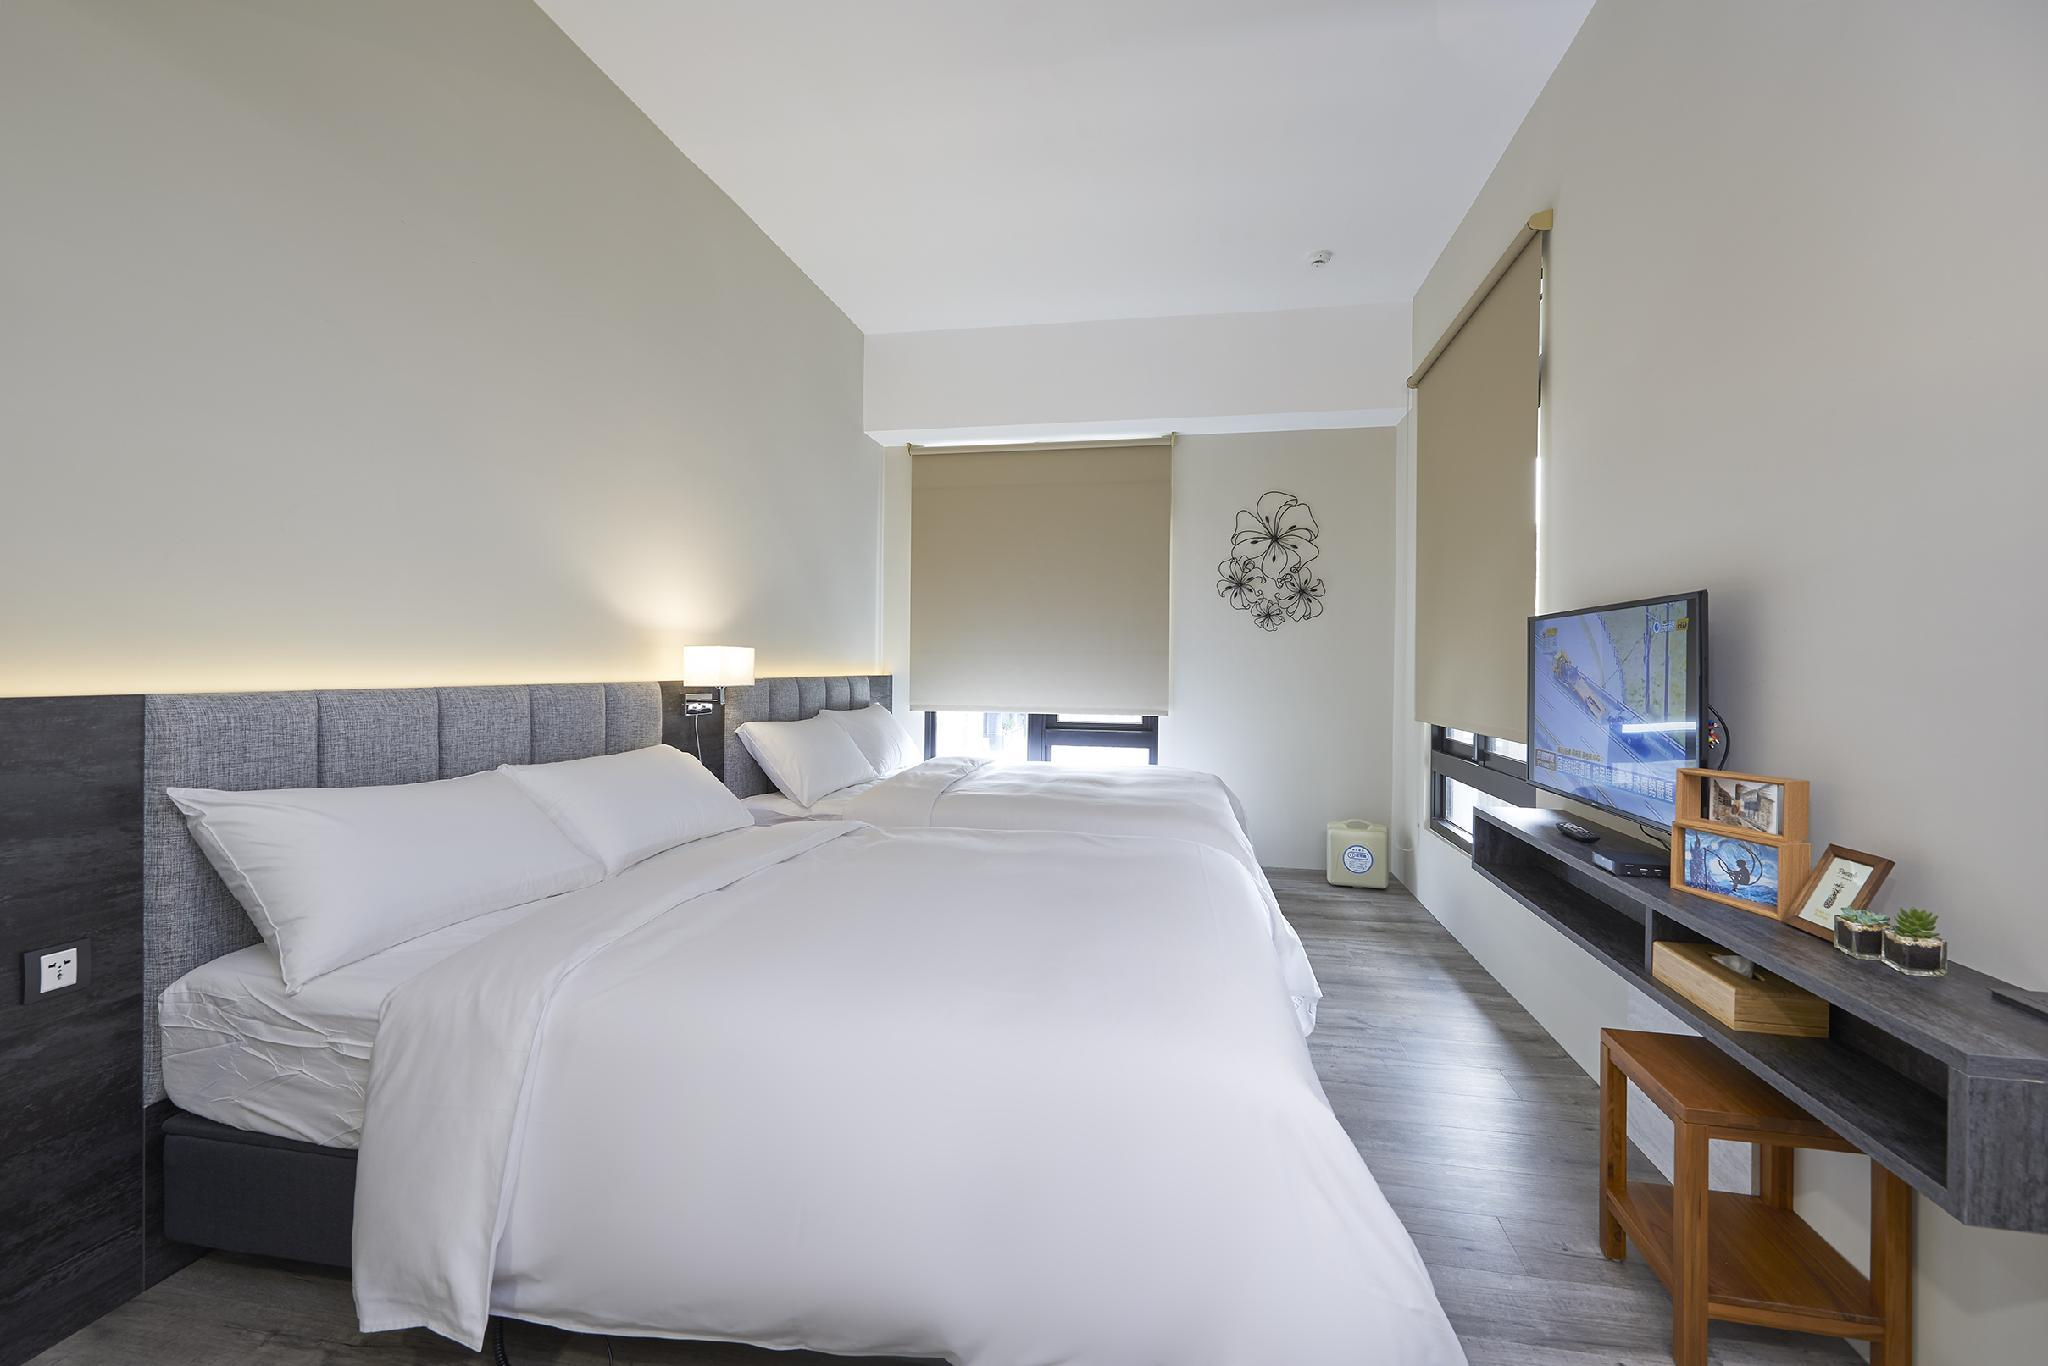 標準4人房 2張雙人床(電動床) (Hotel Z Standard Quadruple Room with 2 Electric Adjustable Double Beds)